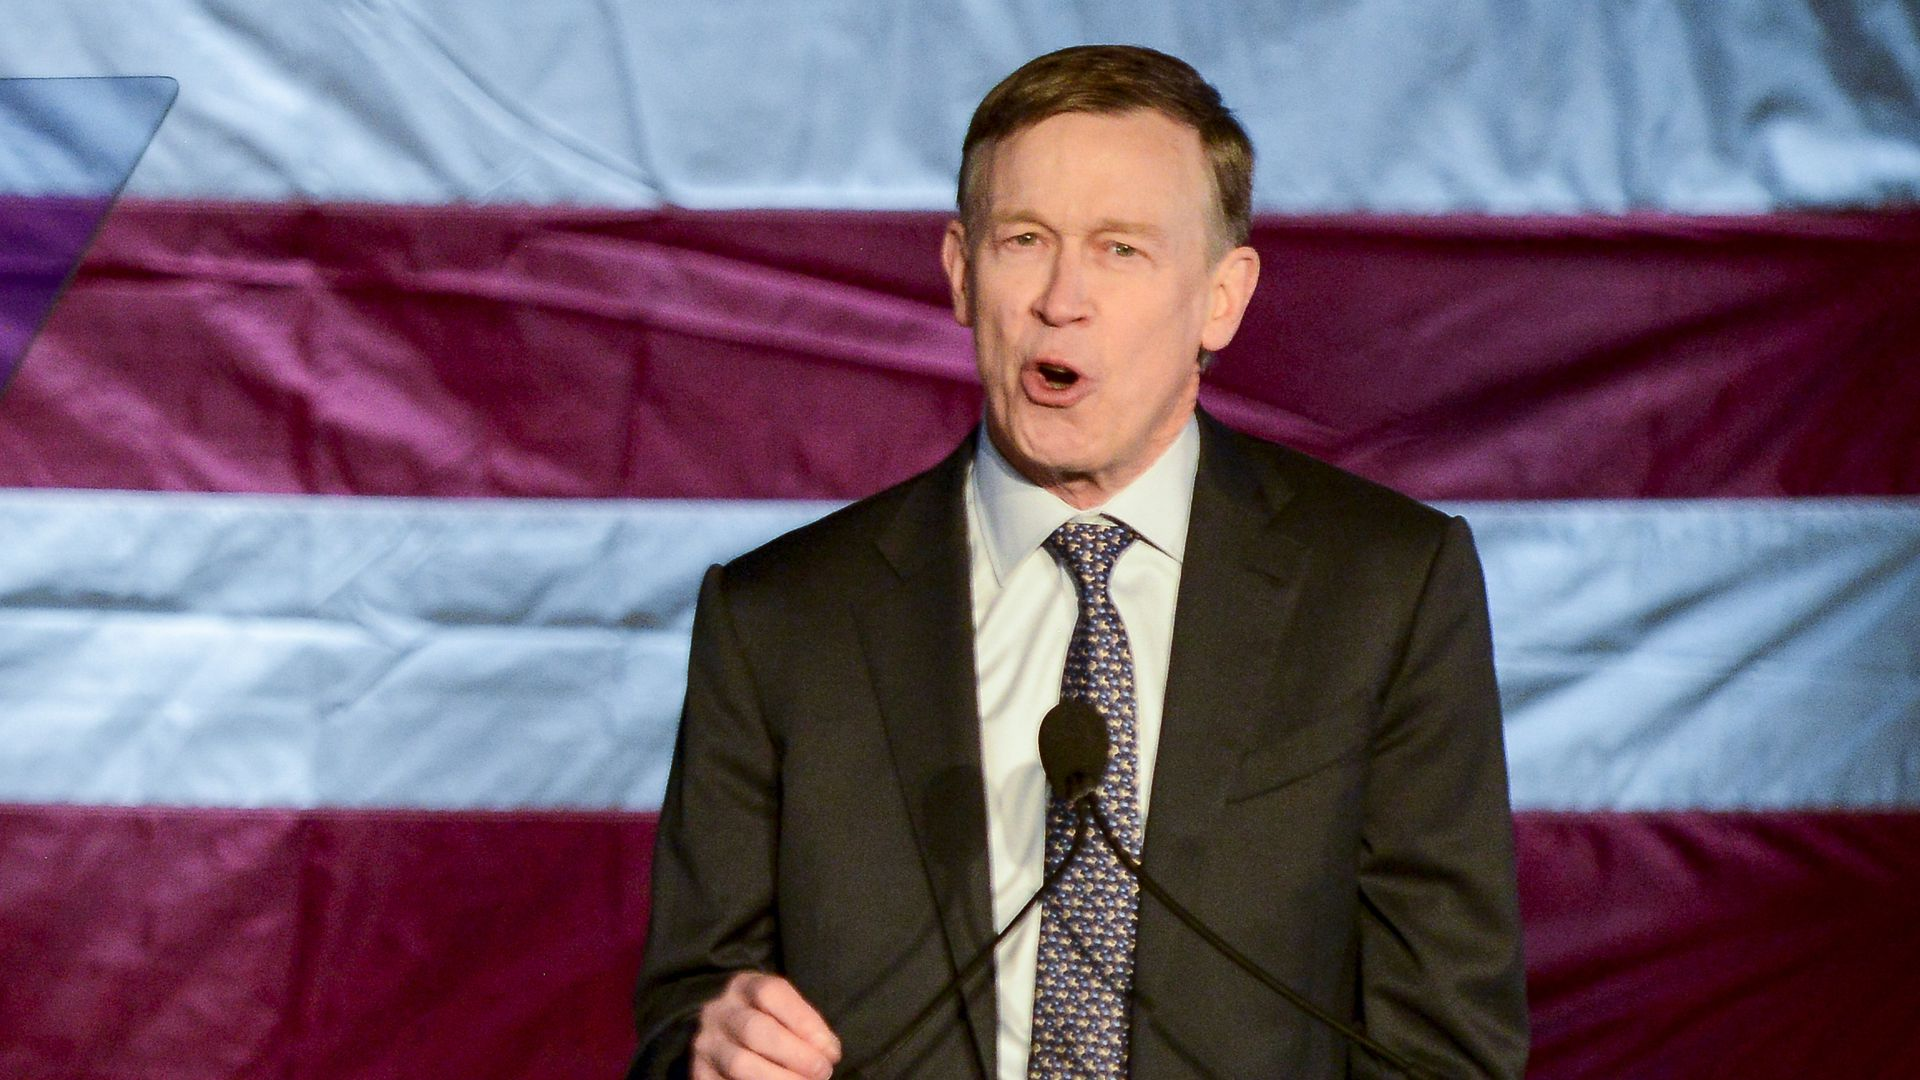 Former Colorado Gov. John Hickenlooper addressed  global terrorism and the rise of white nationalism Wednesday.